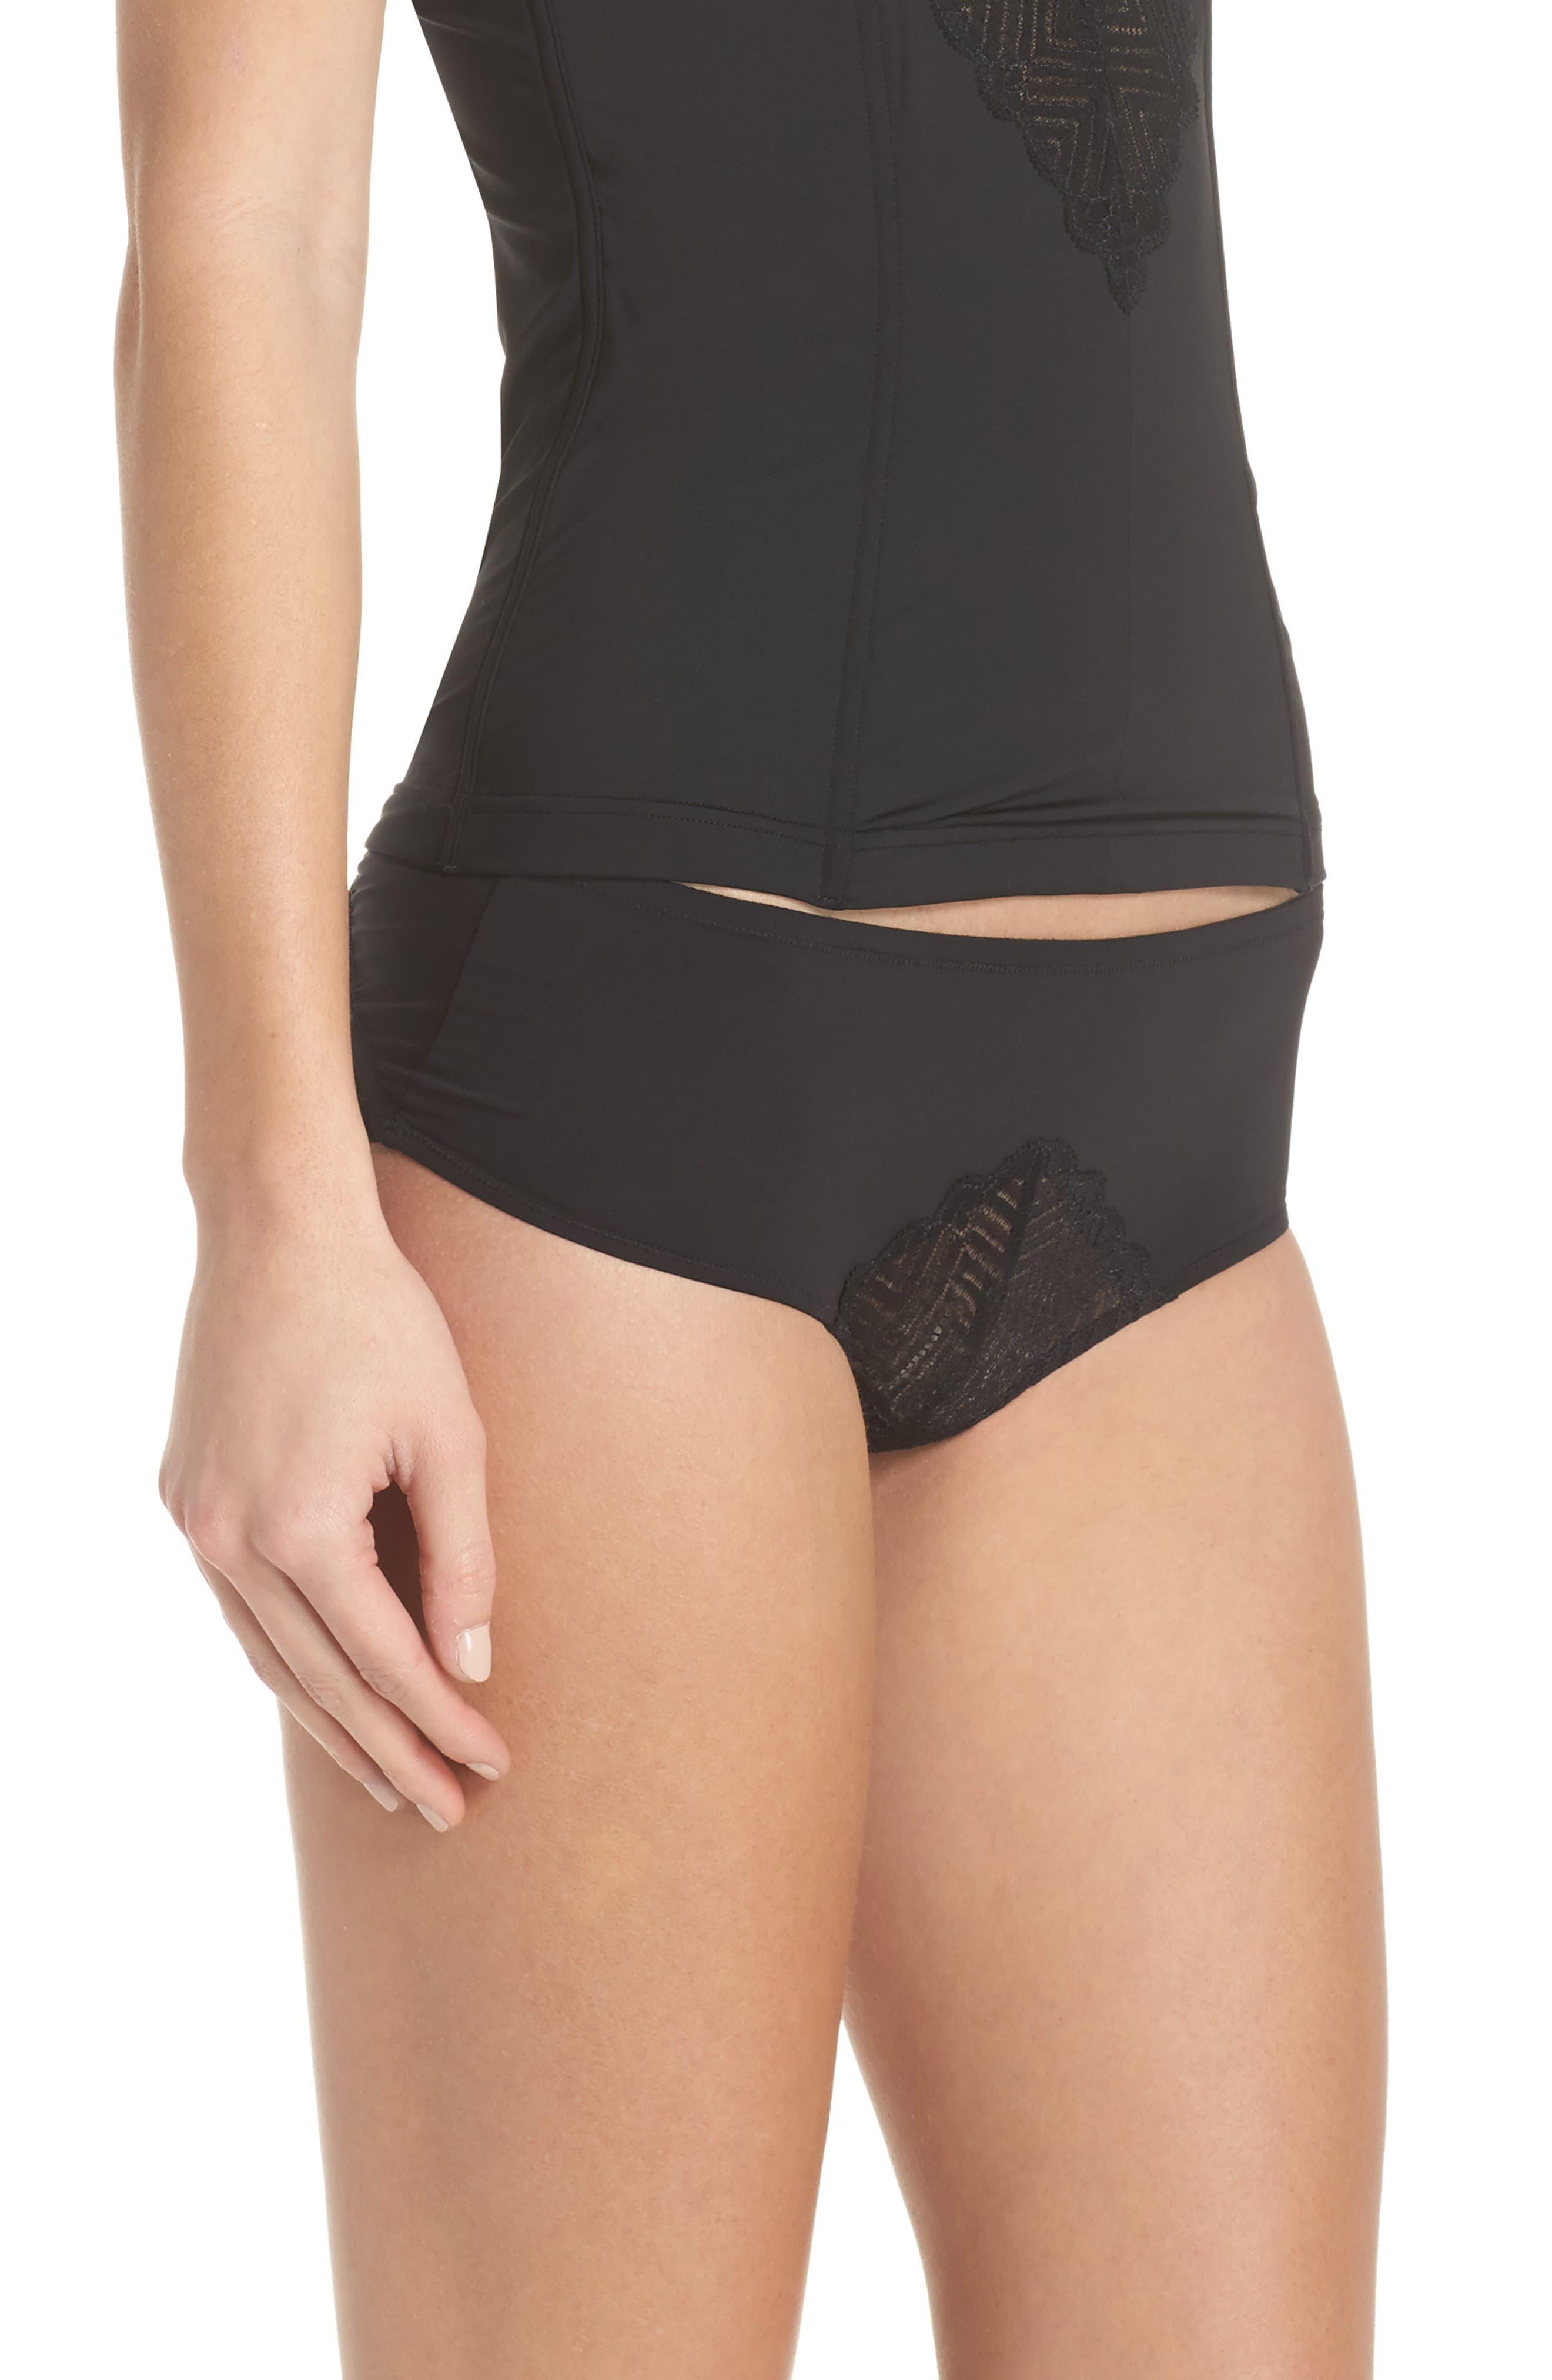 Bisou Naughty Open Back Hotpants,                             Alternate thumbnail 3, color,                             Black